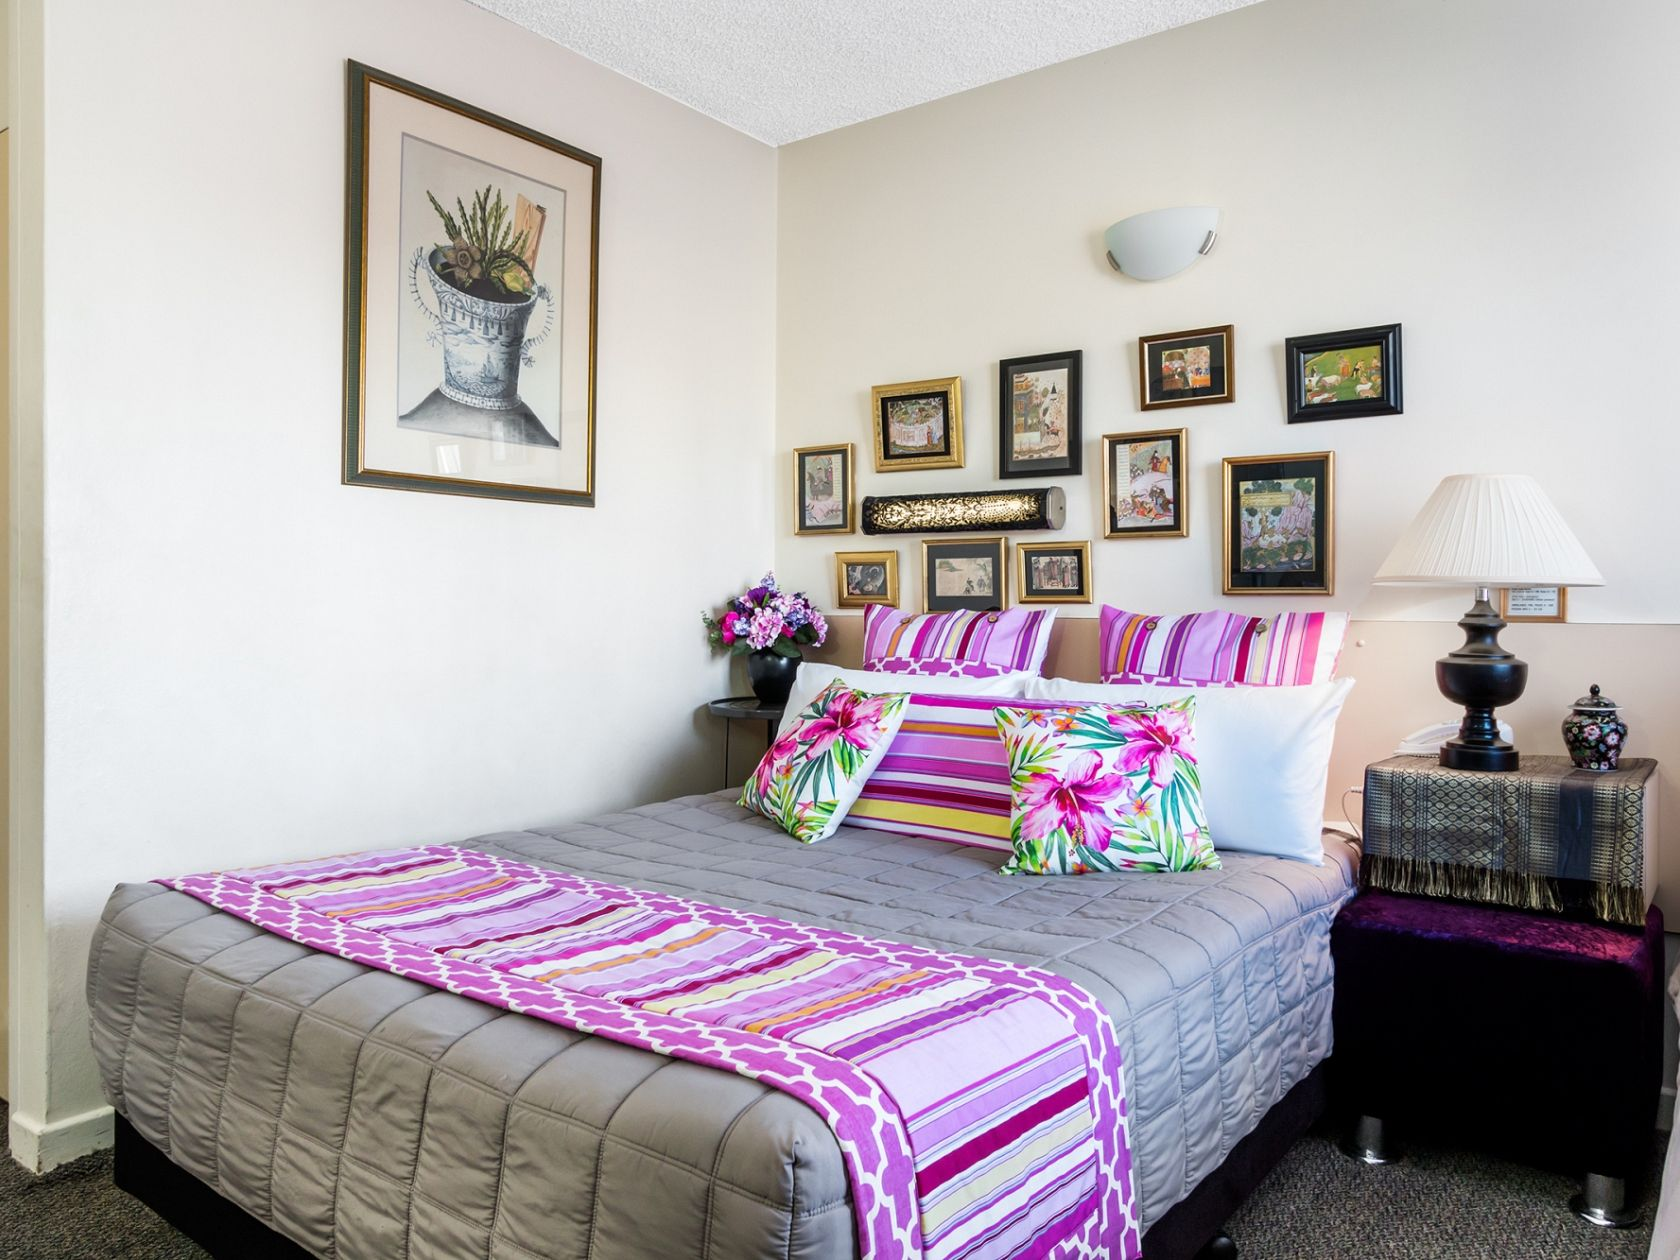 Newly Redecorated Rooms & Relisted To Sell